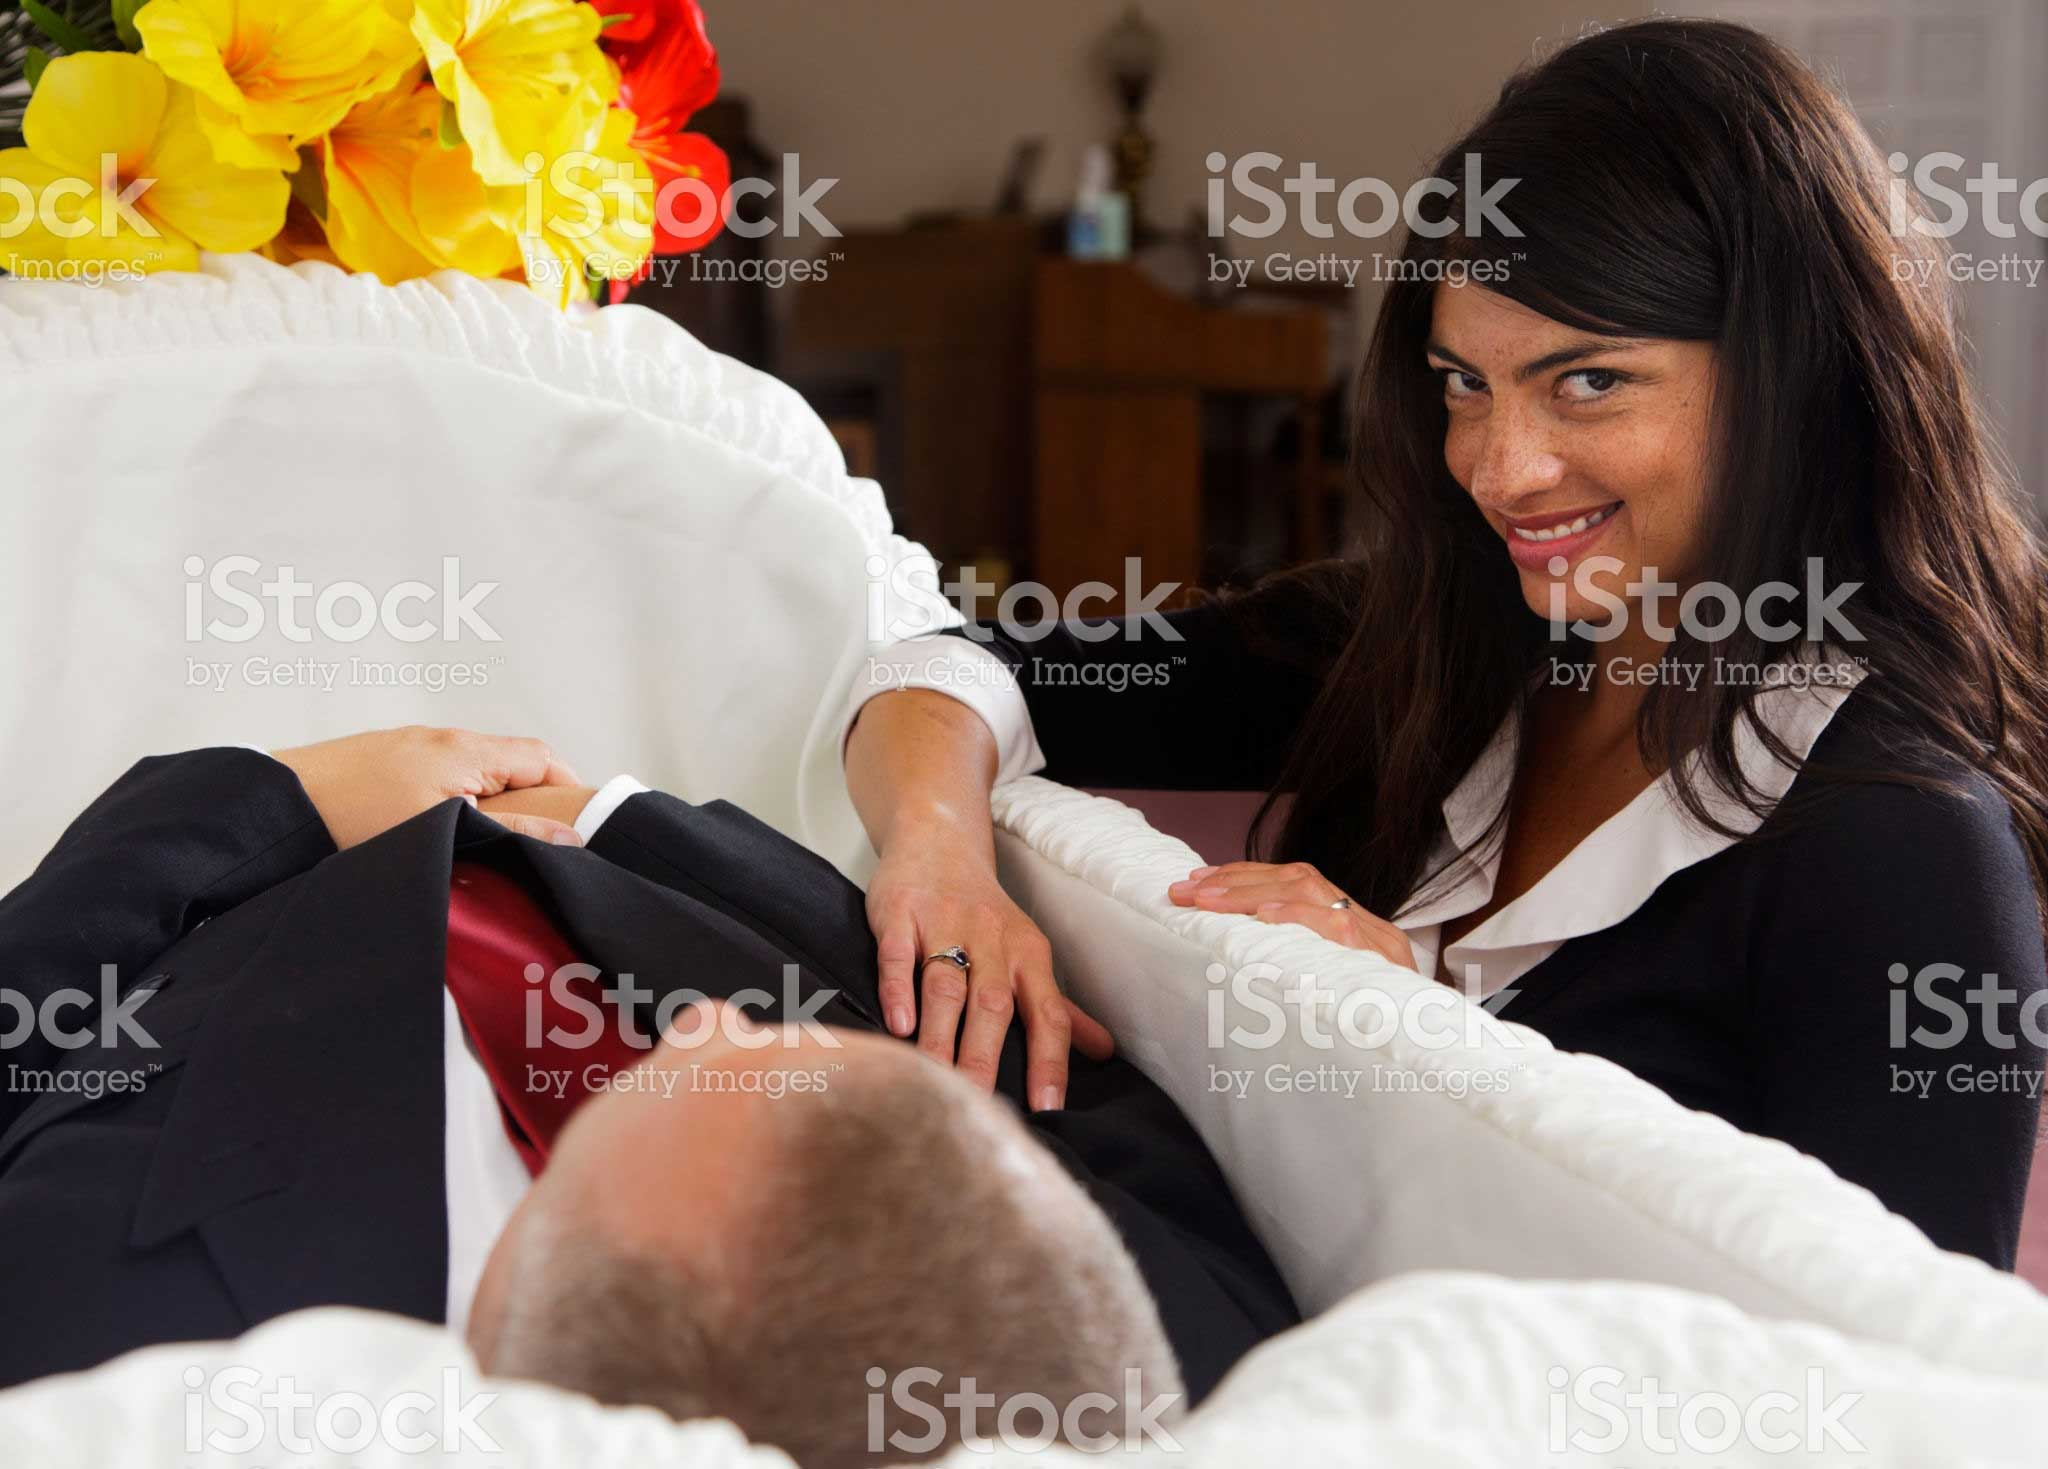 Die skurrilsten WTF?!-Stock Photos die-skurrilsten-wtf-stock-photos_09